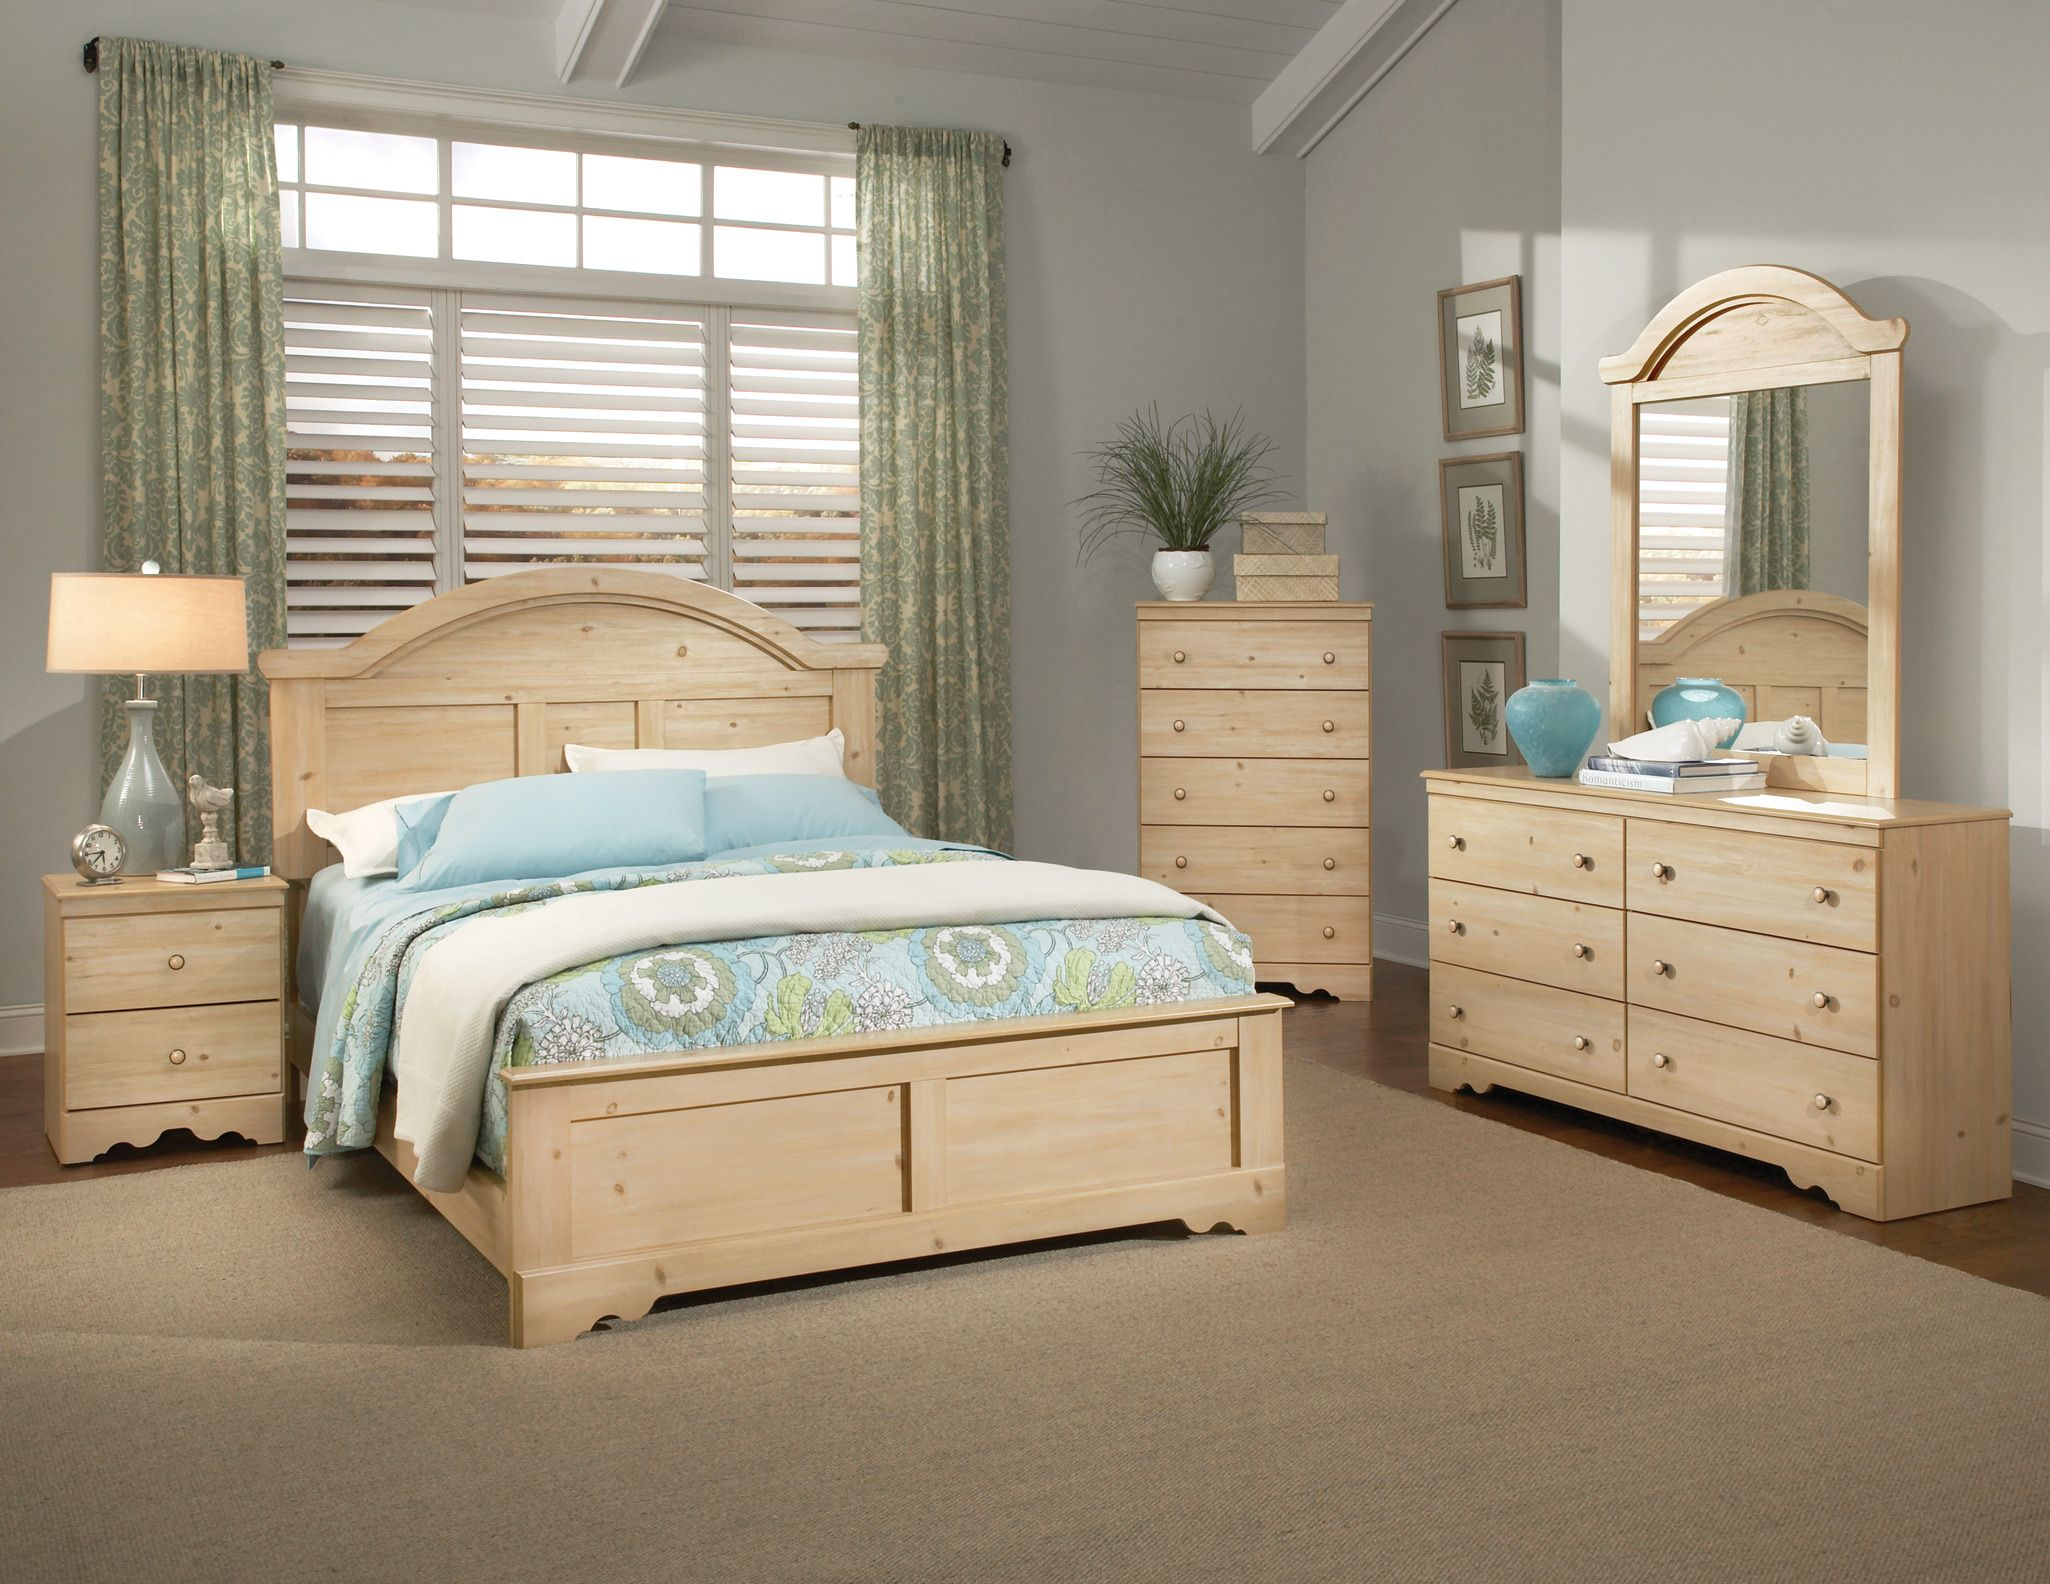 Bedroom furniture sets pine design ideas 2017 2018 for Bedroom ideas oak